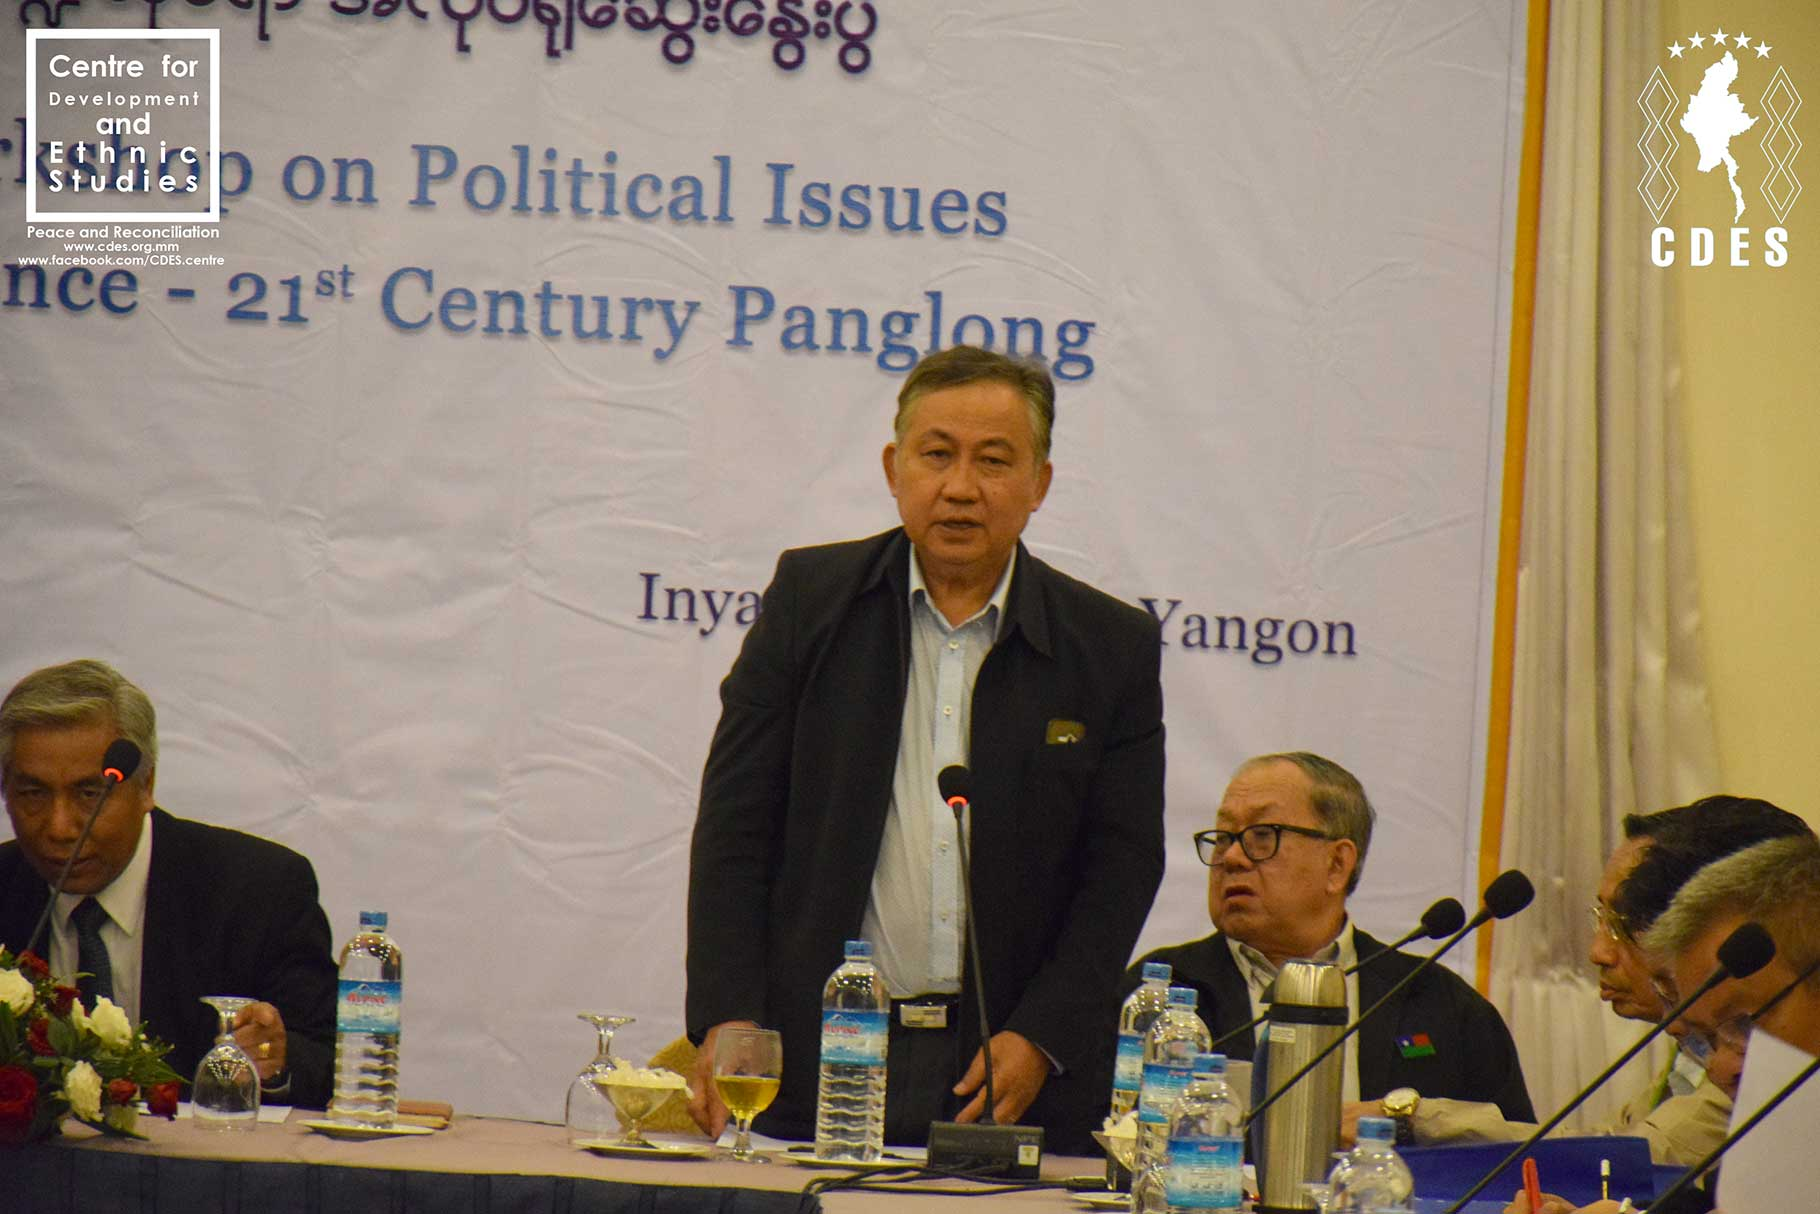 CDES gears up for 21st Century Panglong